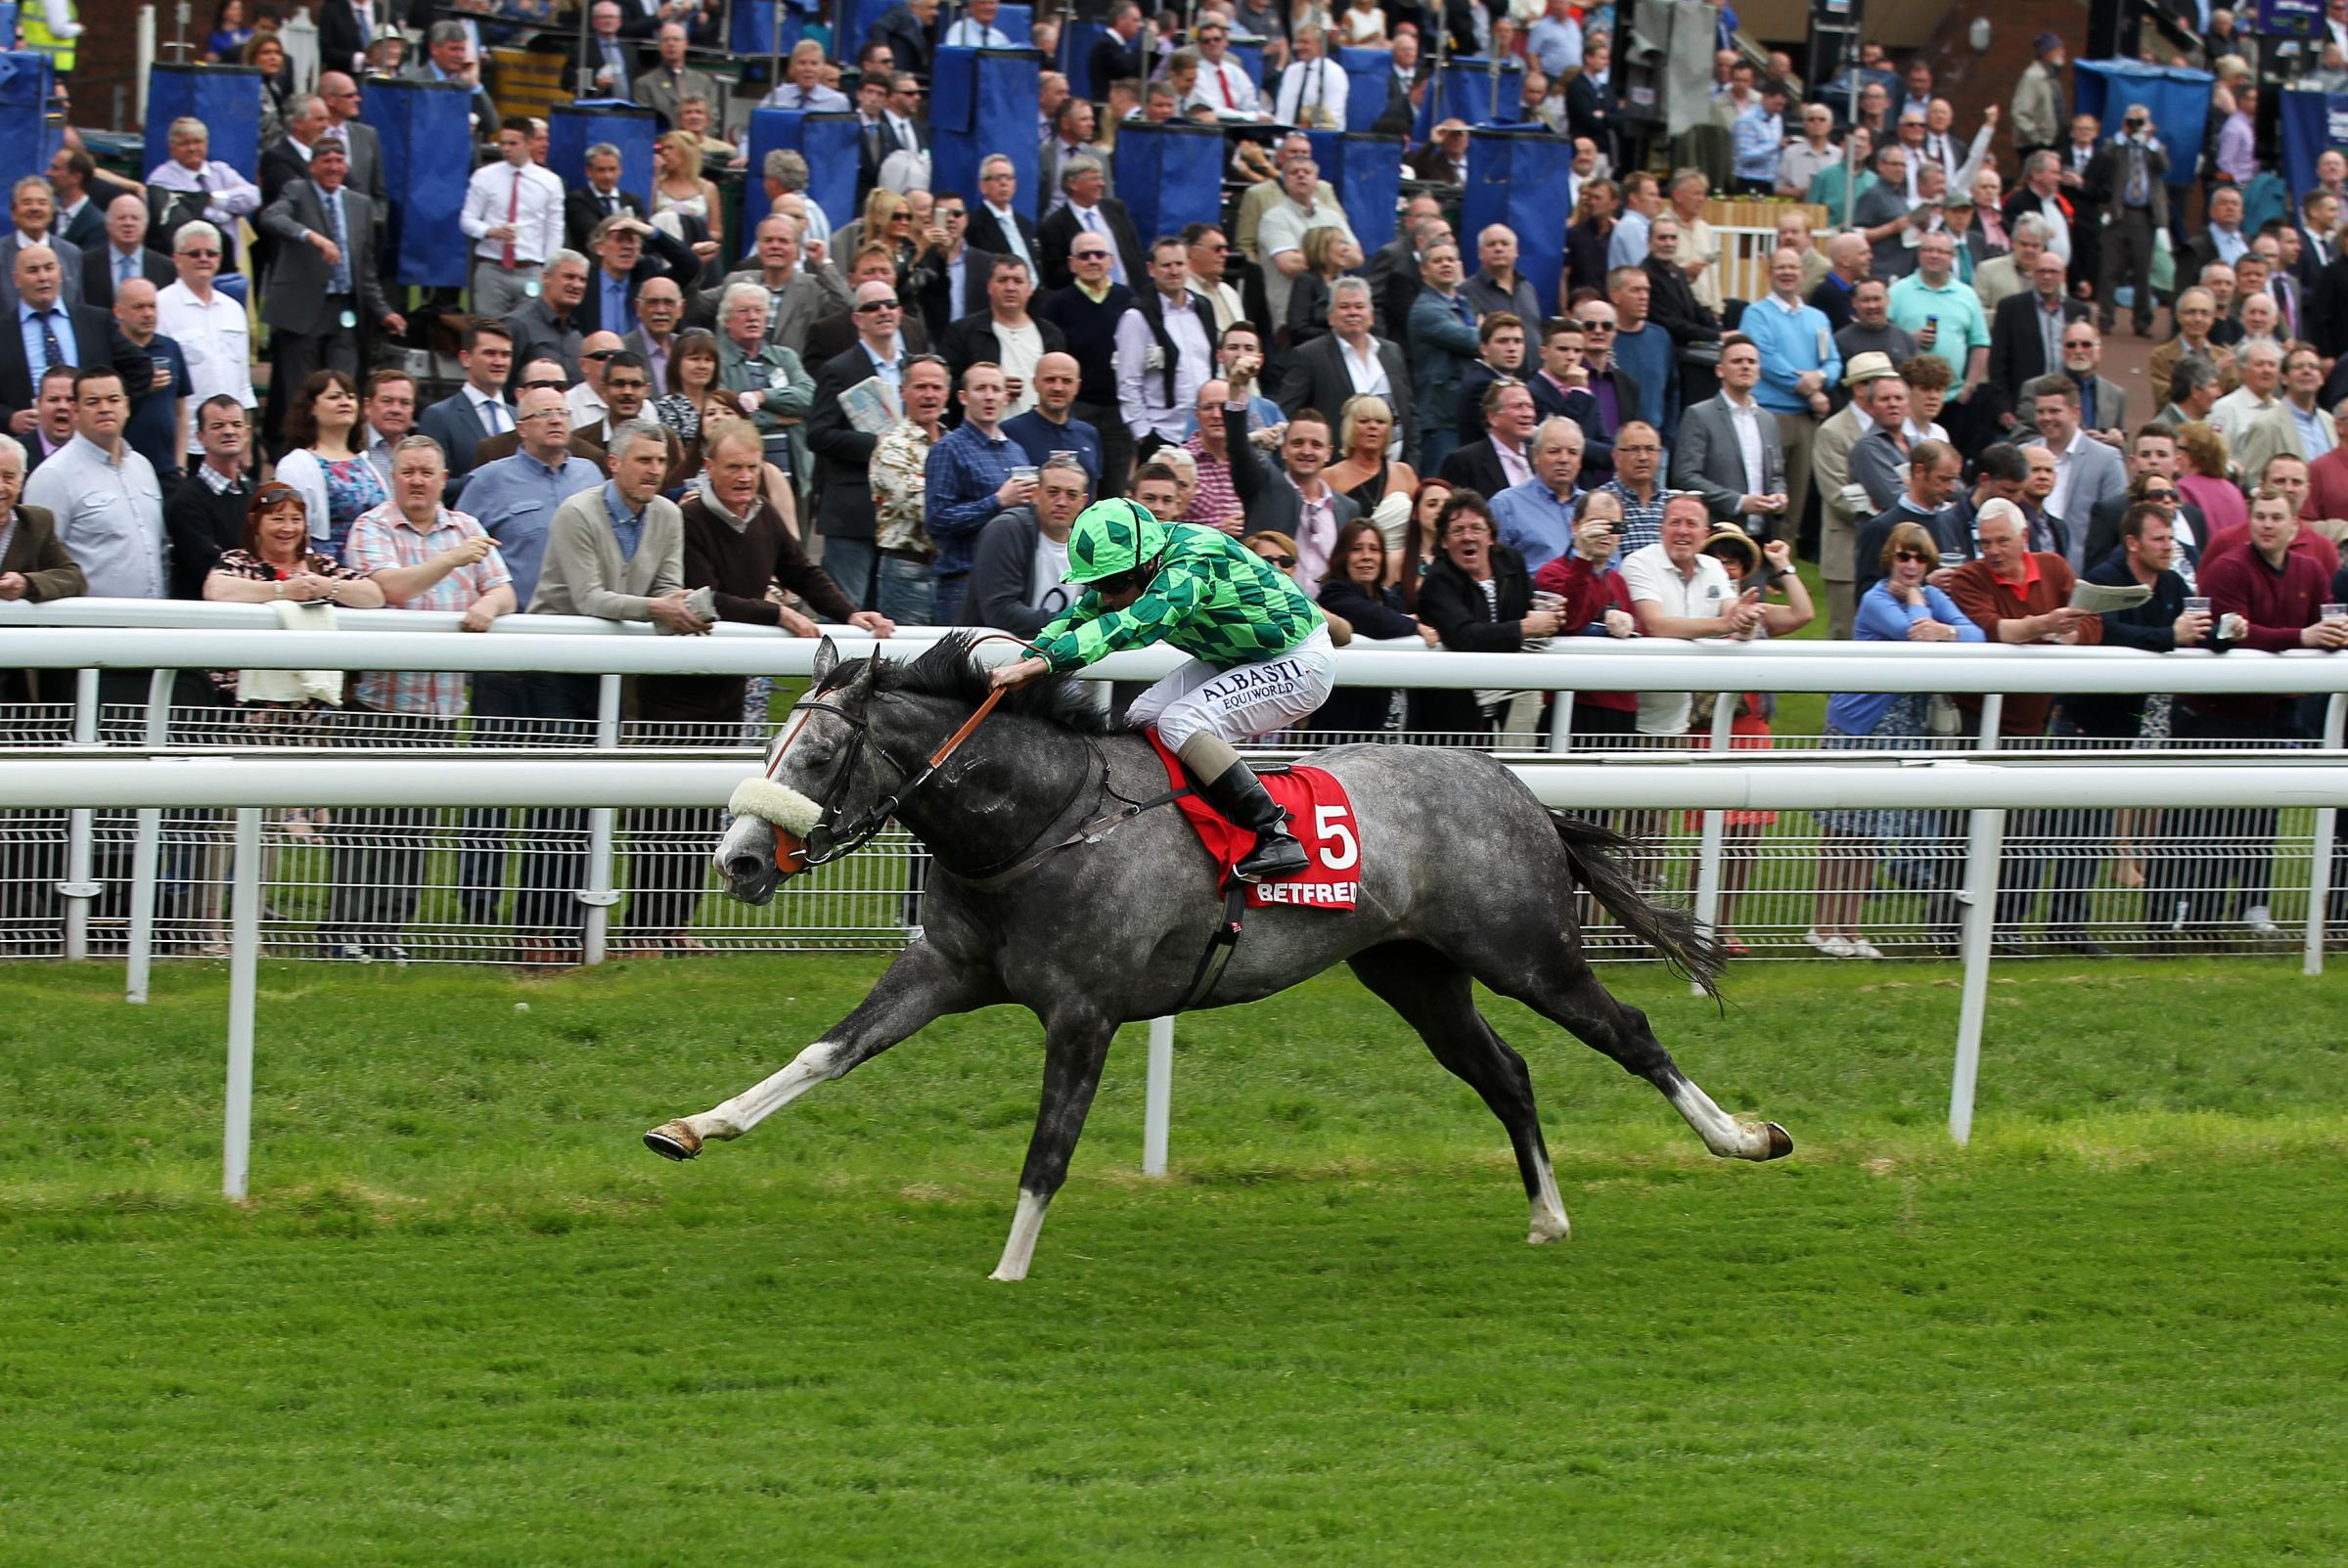 The Grey Gatsby ridden by Ryan Moore wins The Betfred Dante Stakes during day two of the Dante Festival at York Racecourse.